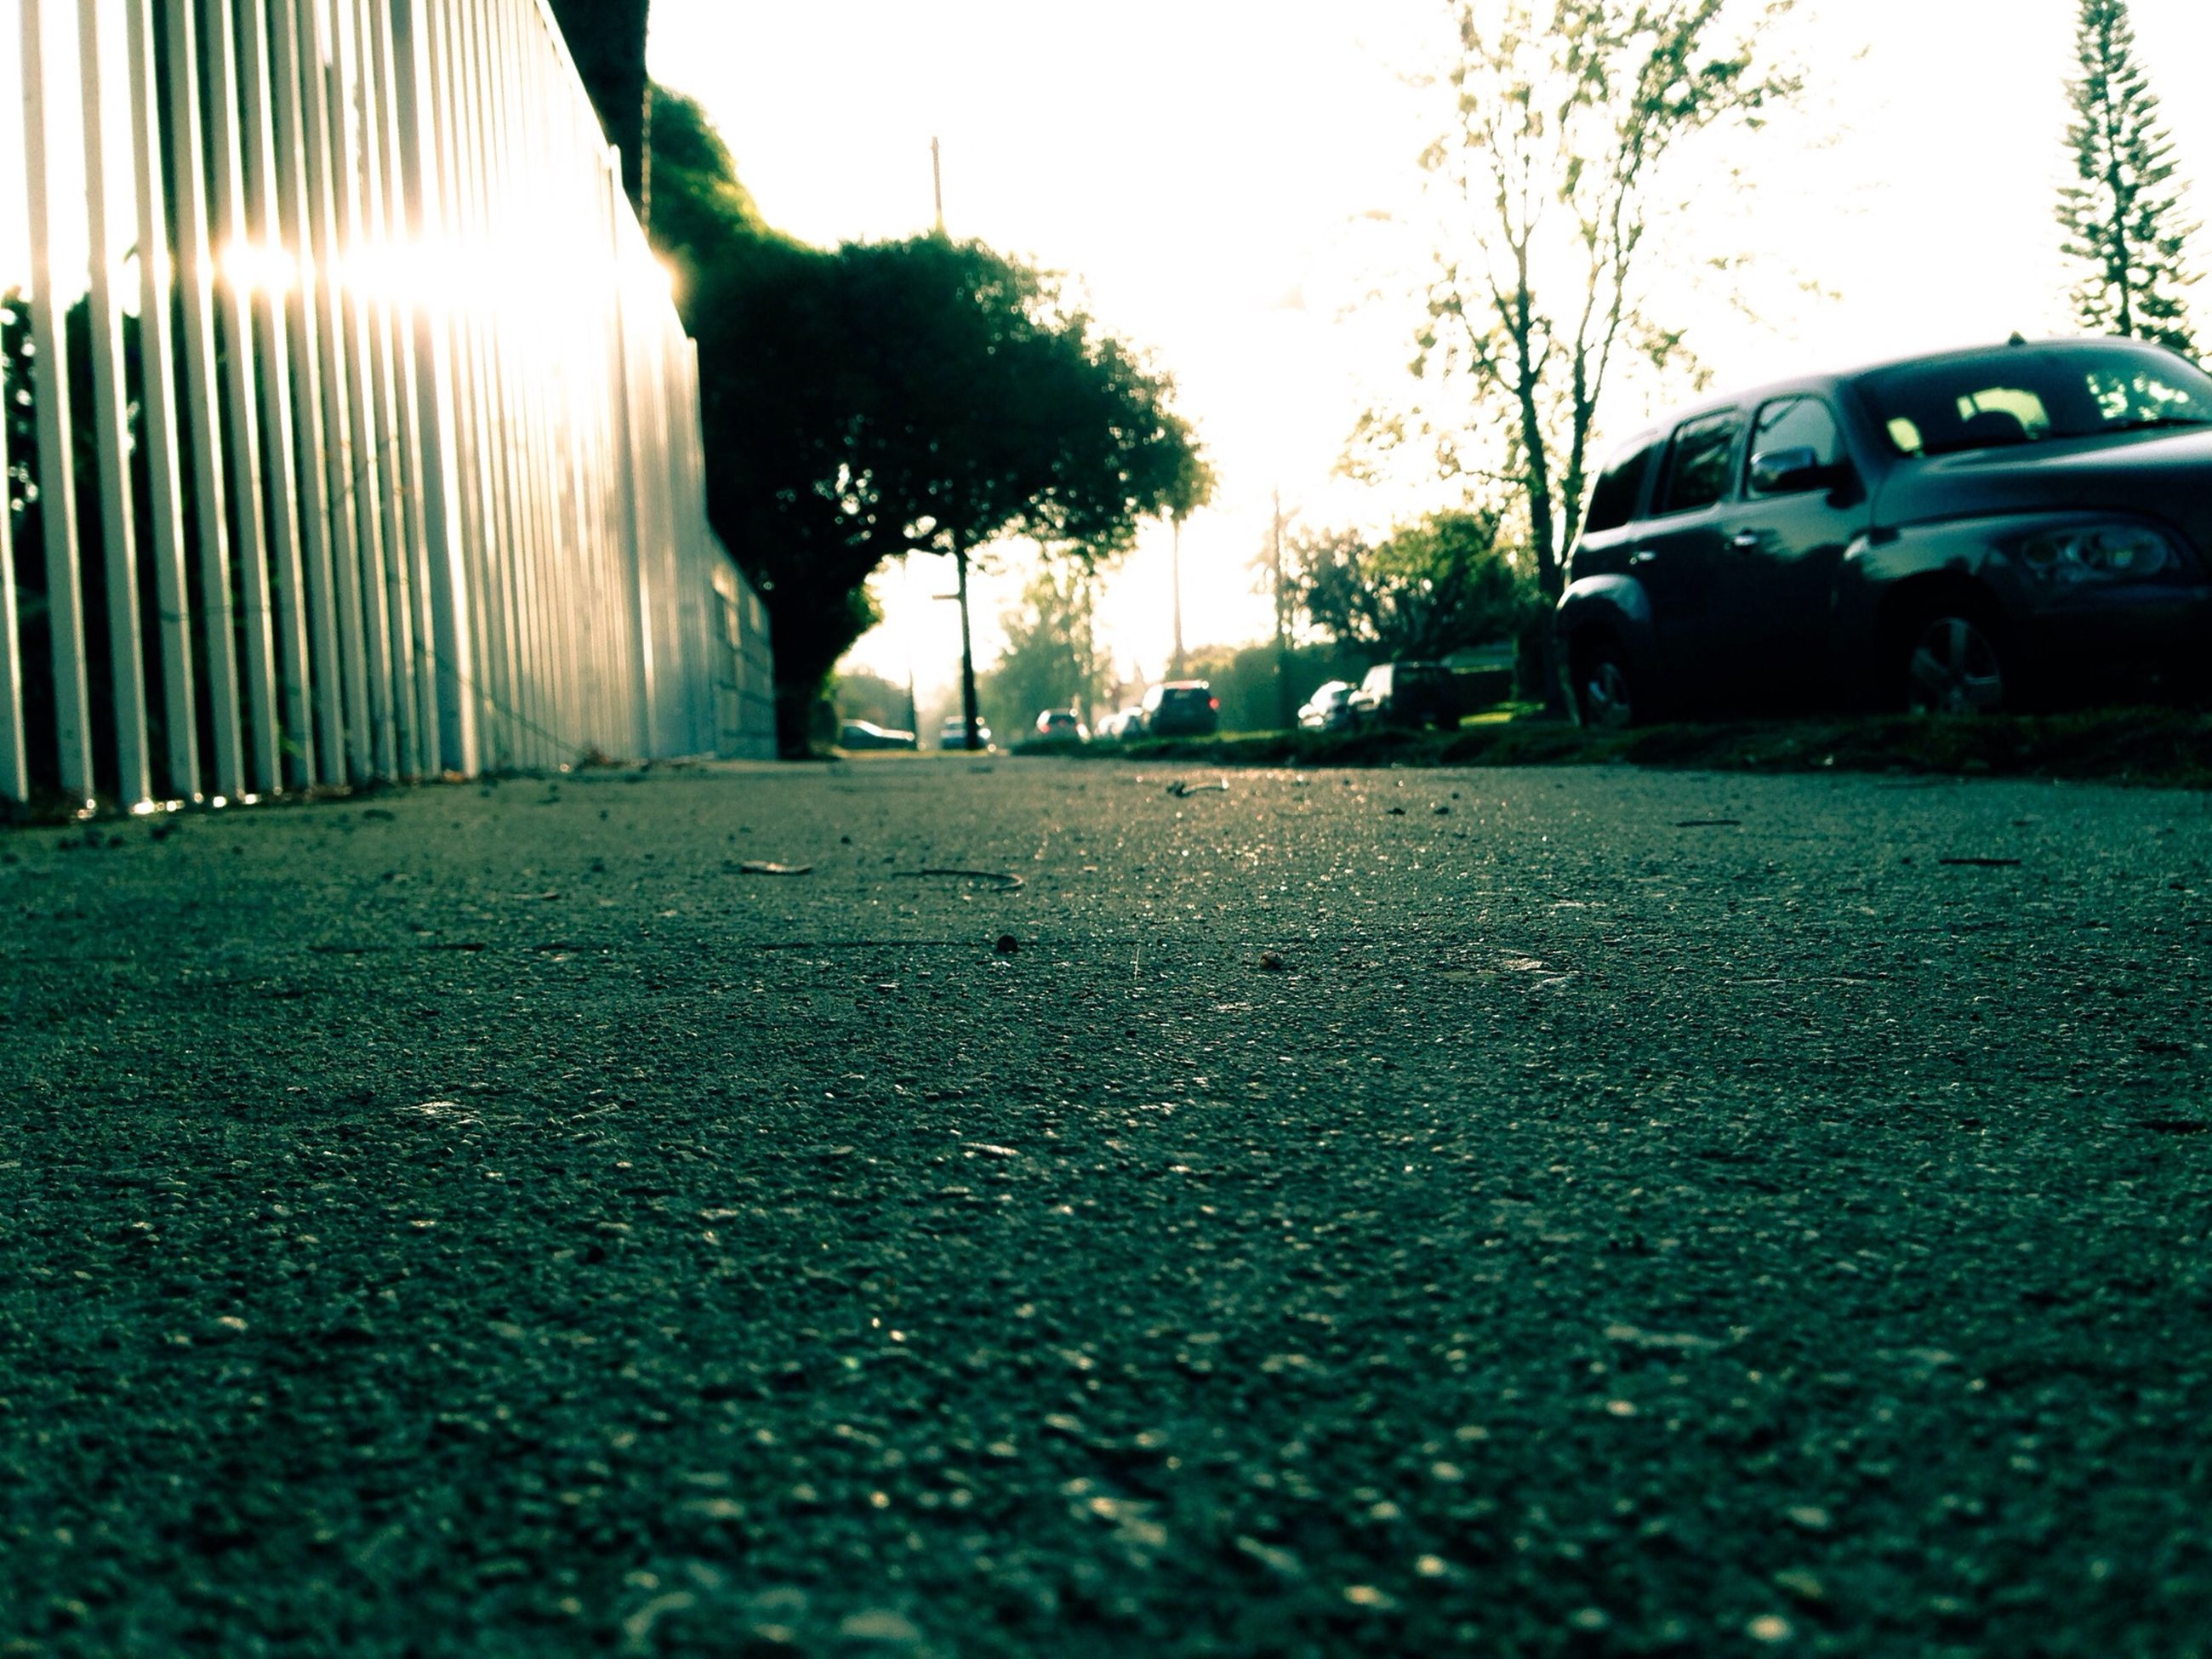 the way forward, transportation, surface level, road, street, asphalt, diminishing perspective, vanishing point, road marking, tree, sunlight, sky, car, empty, sunset, empty road, built structure, land vehicle, outdoors, clear sky